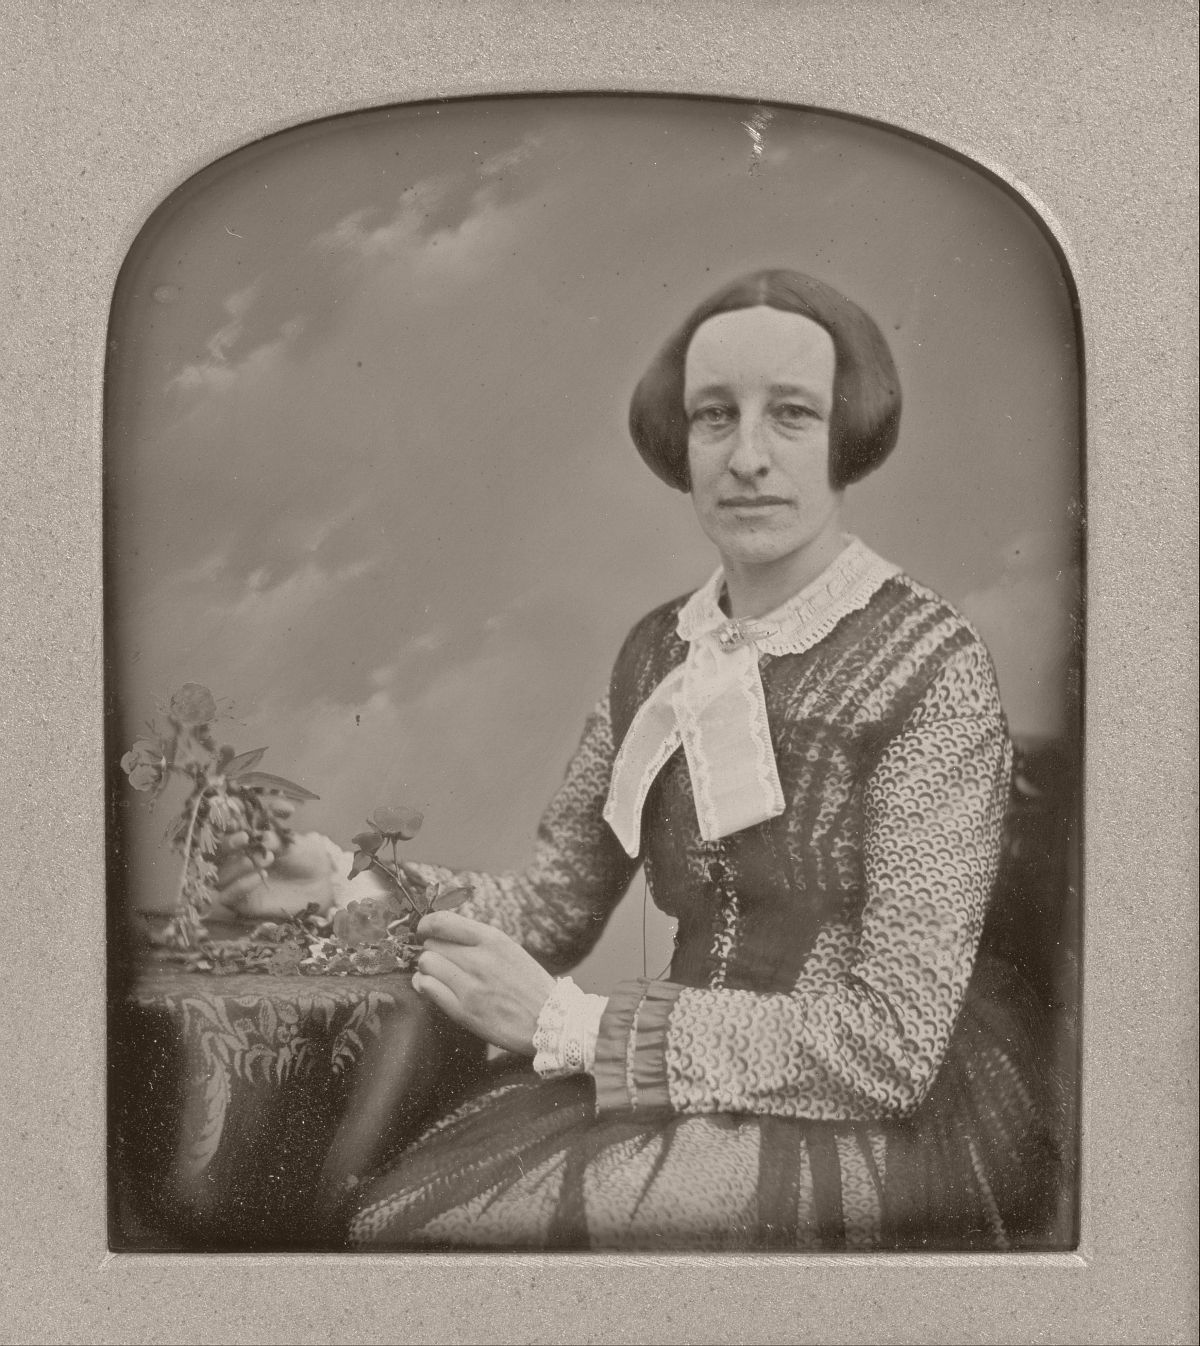 Mrs. R. Holdsworth, February 16, 1853, Daguerreotype